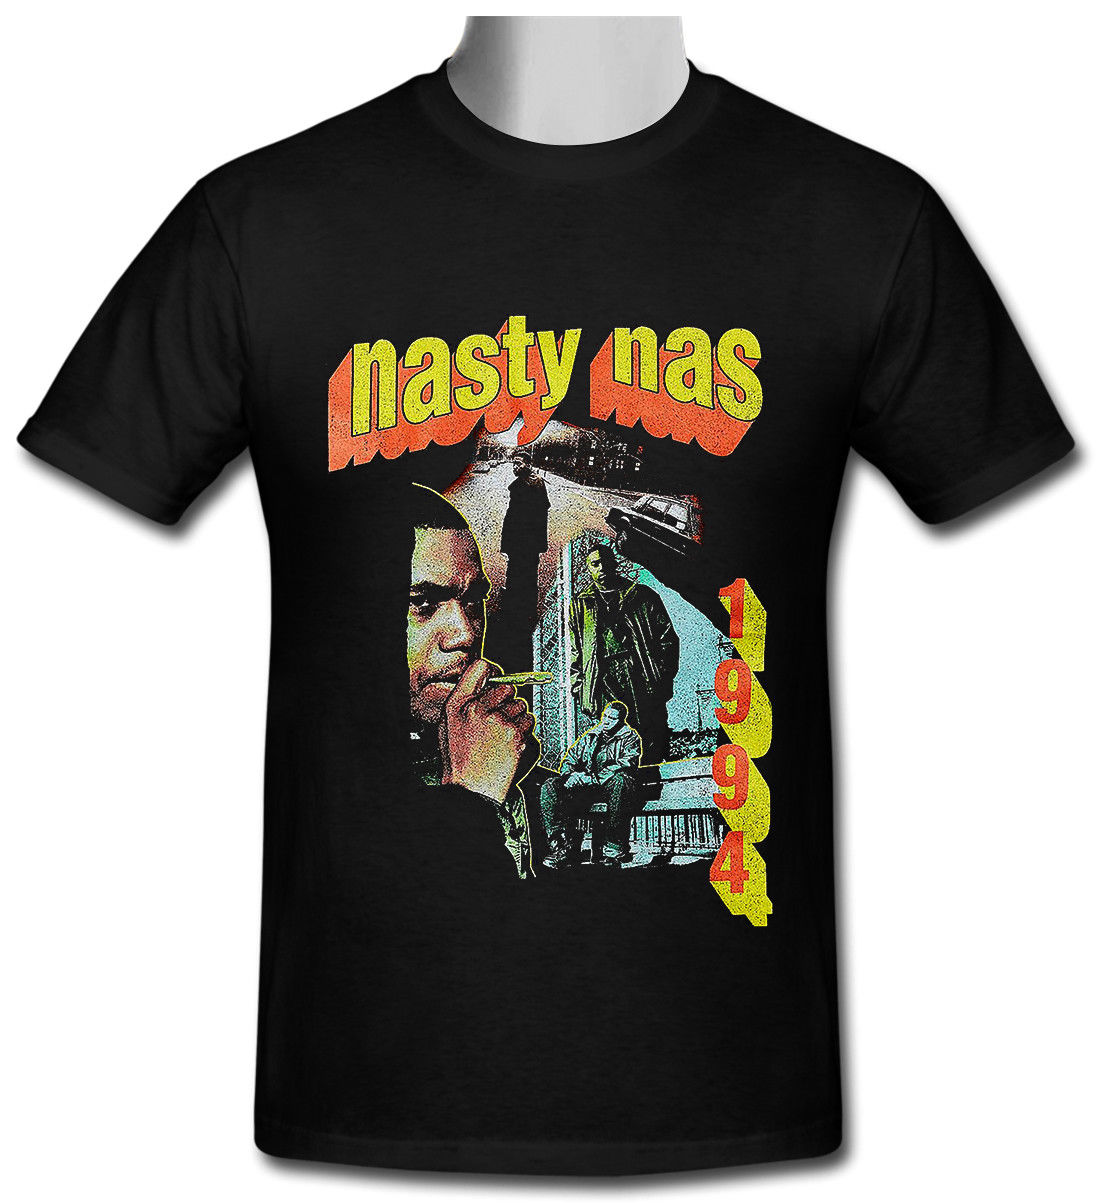 Nasty Nas Vintage Retro Hip Hop  Black T-shirt Size S To 3XL 100% Cotton Short Sleeves T Shirts Top Tee Round Neck Best